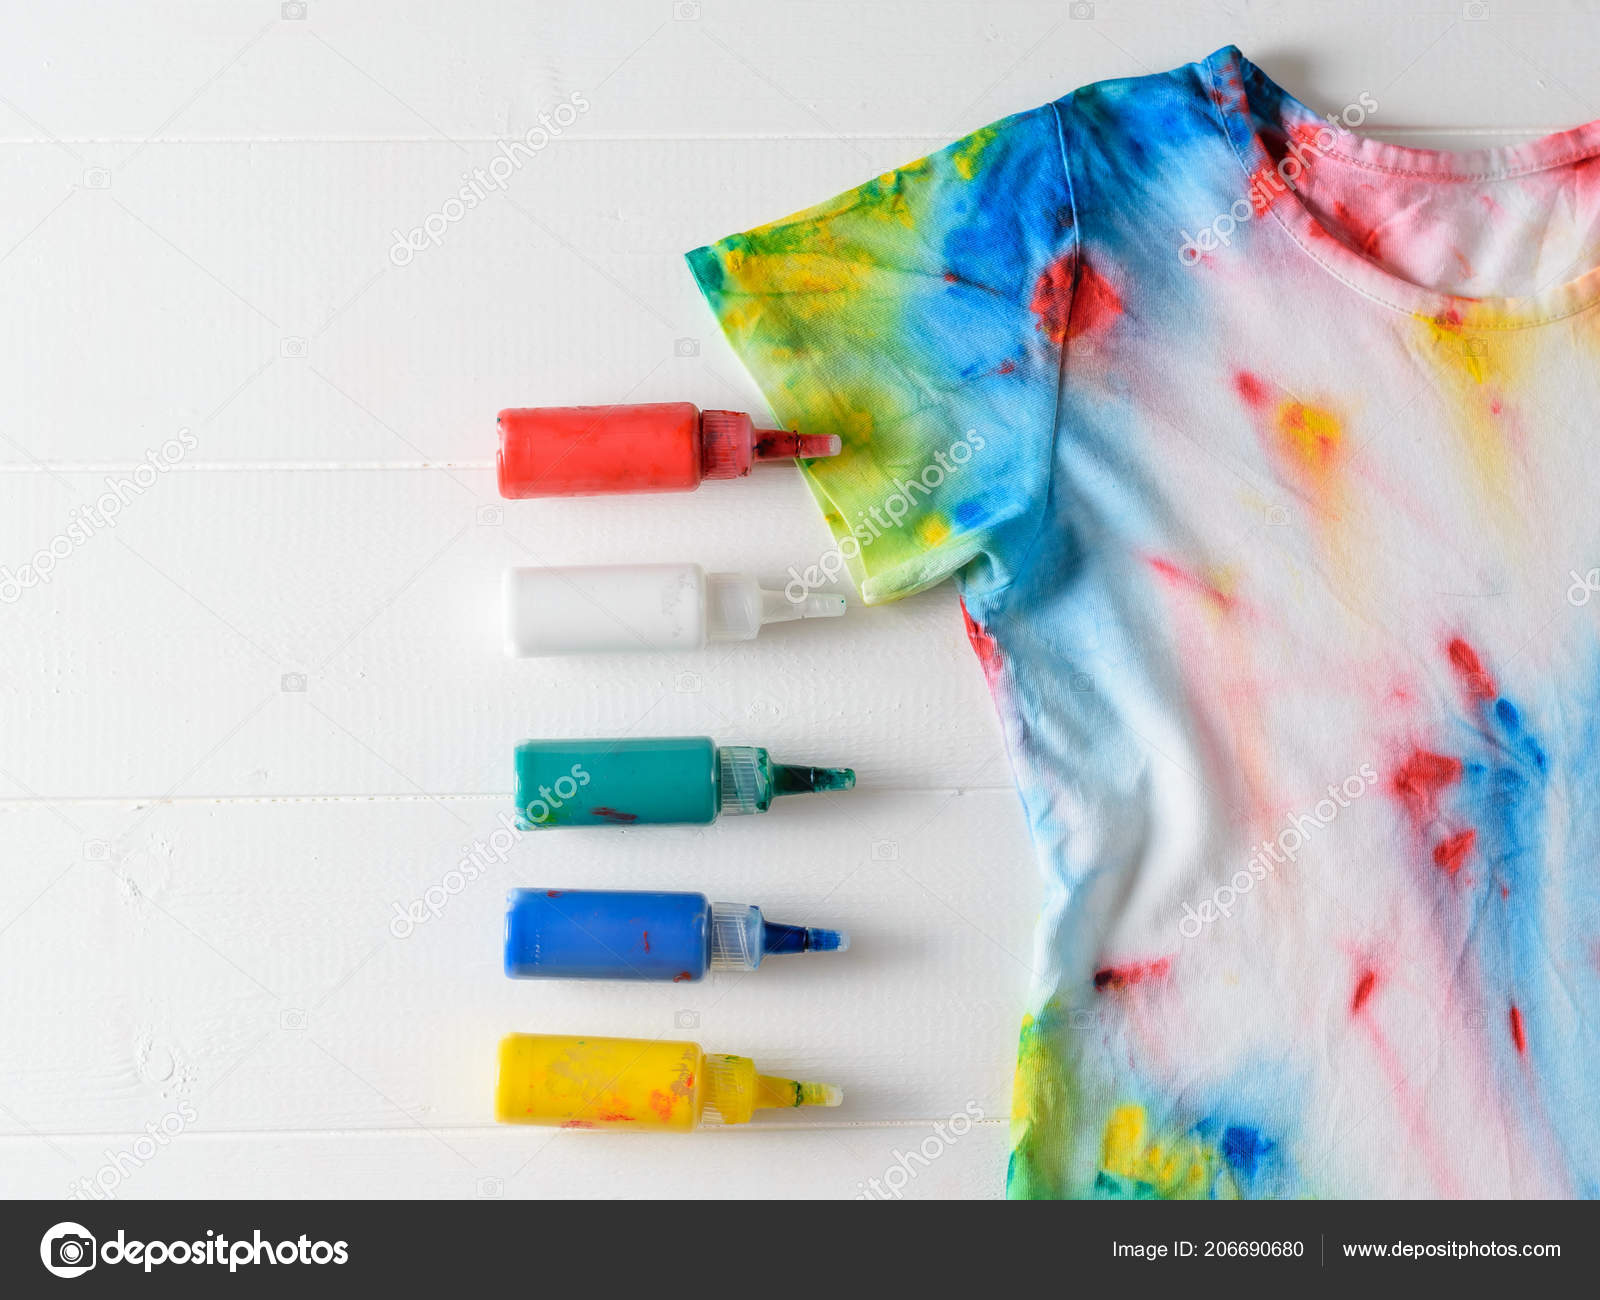 c5431749 Tubes Paint Clothes Shirt Tie Dye Style White Wooden Table — Stock Photo